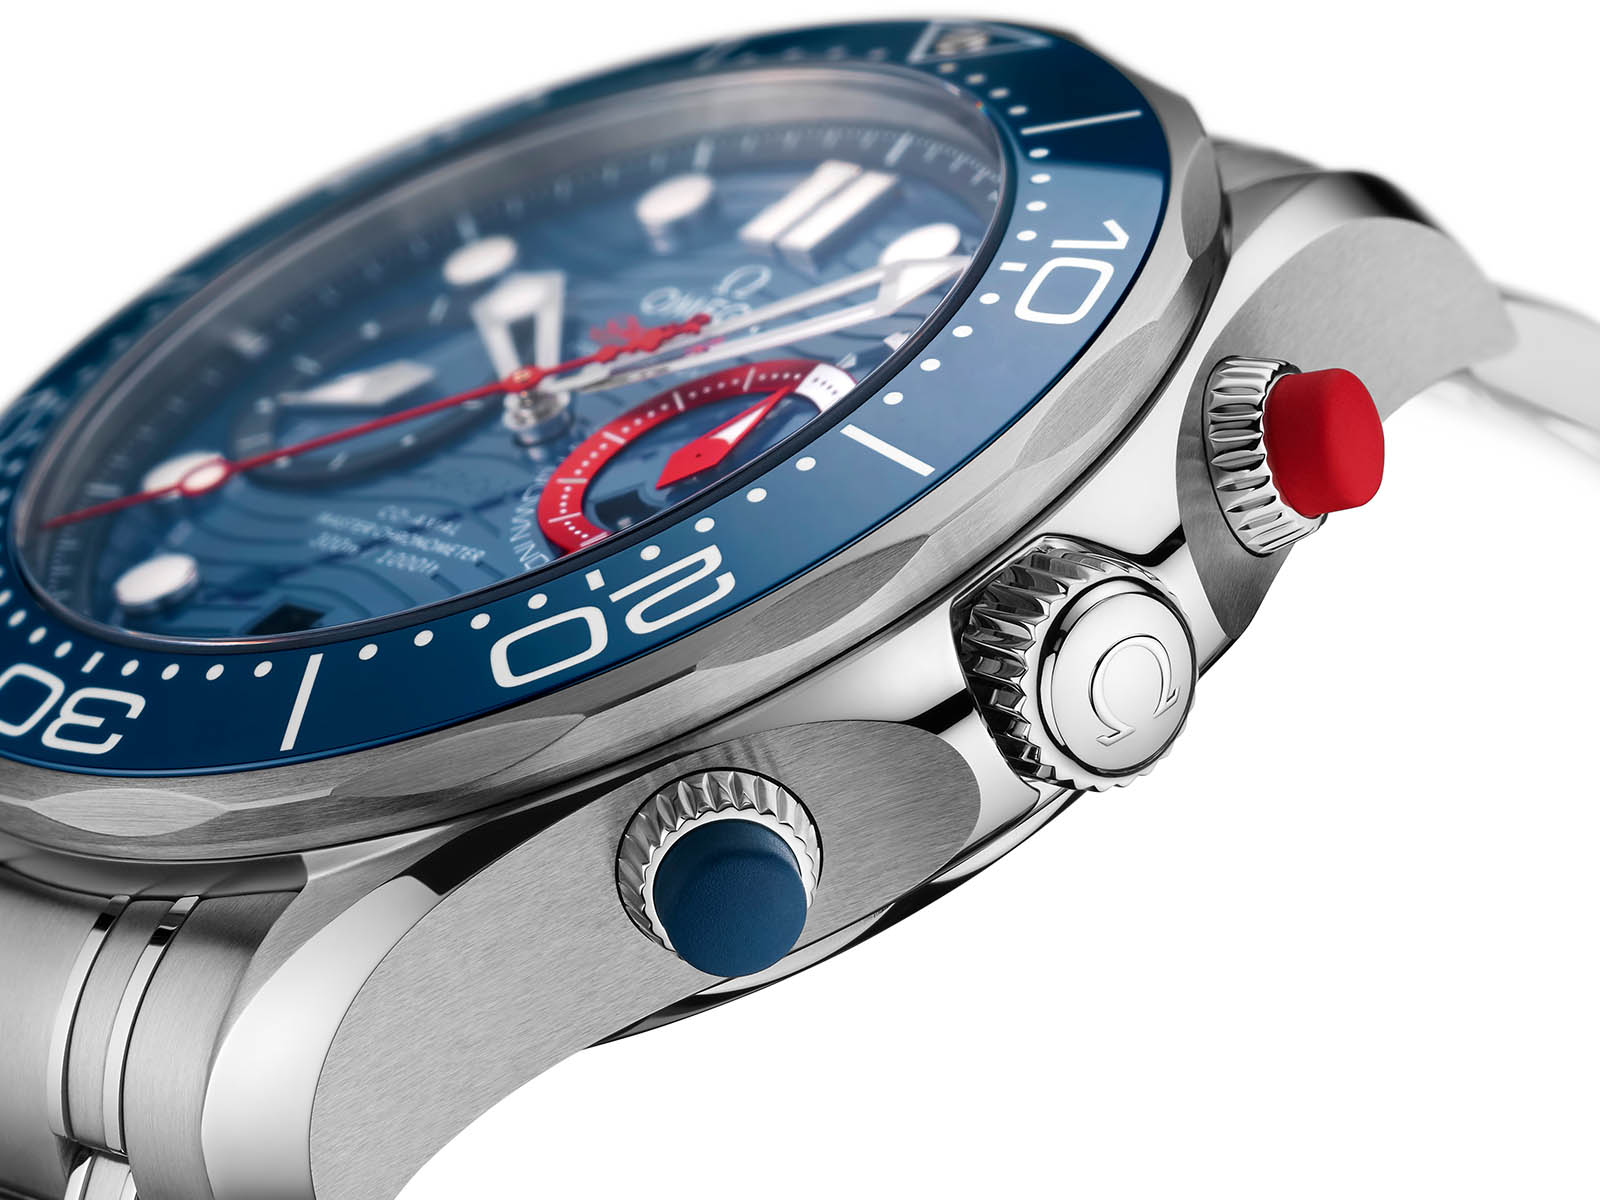 210-30-44-51-03-002-omega-seamaster-diver-300m-america-s-cup-chronograph-4.jpg